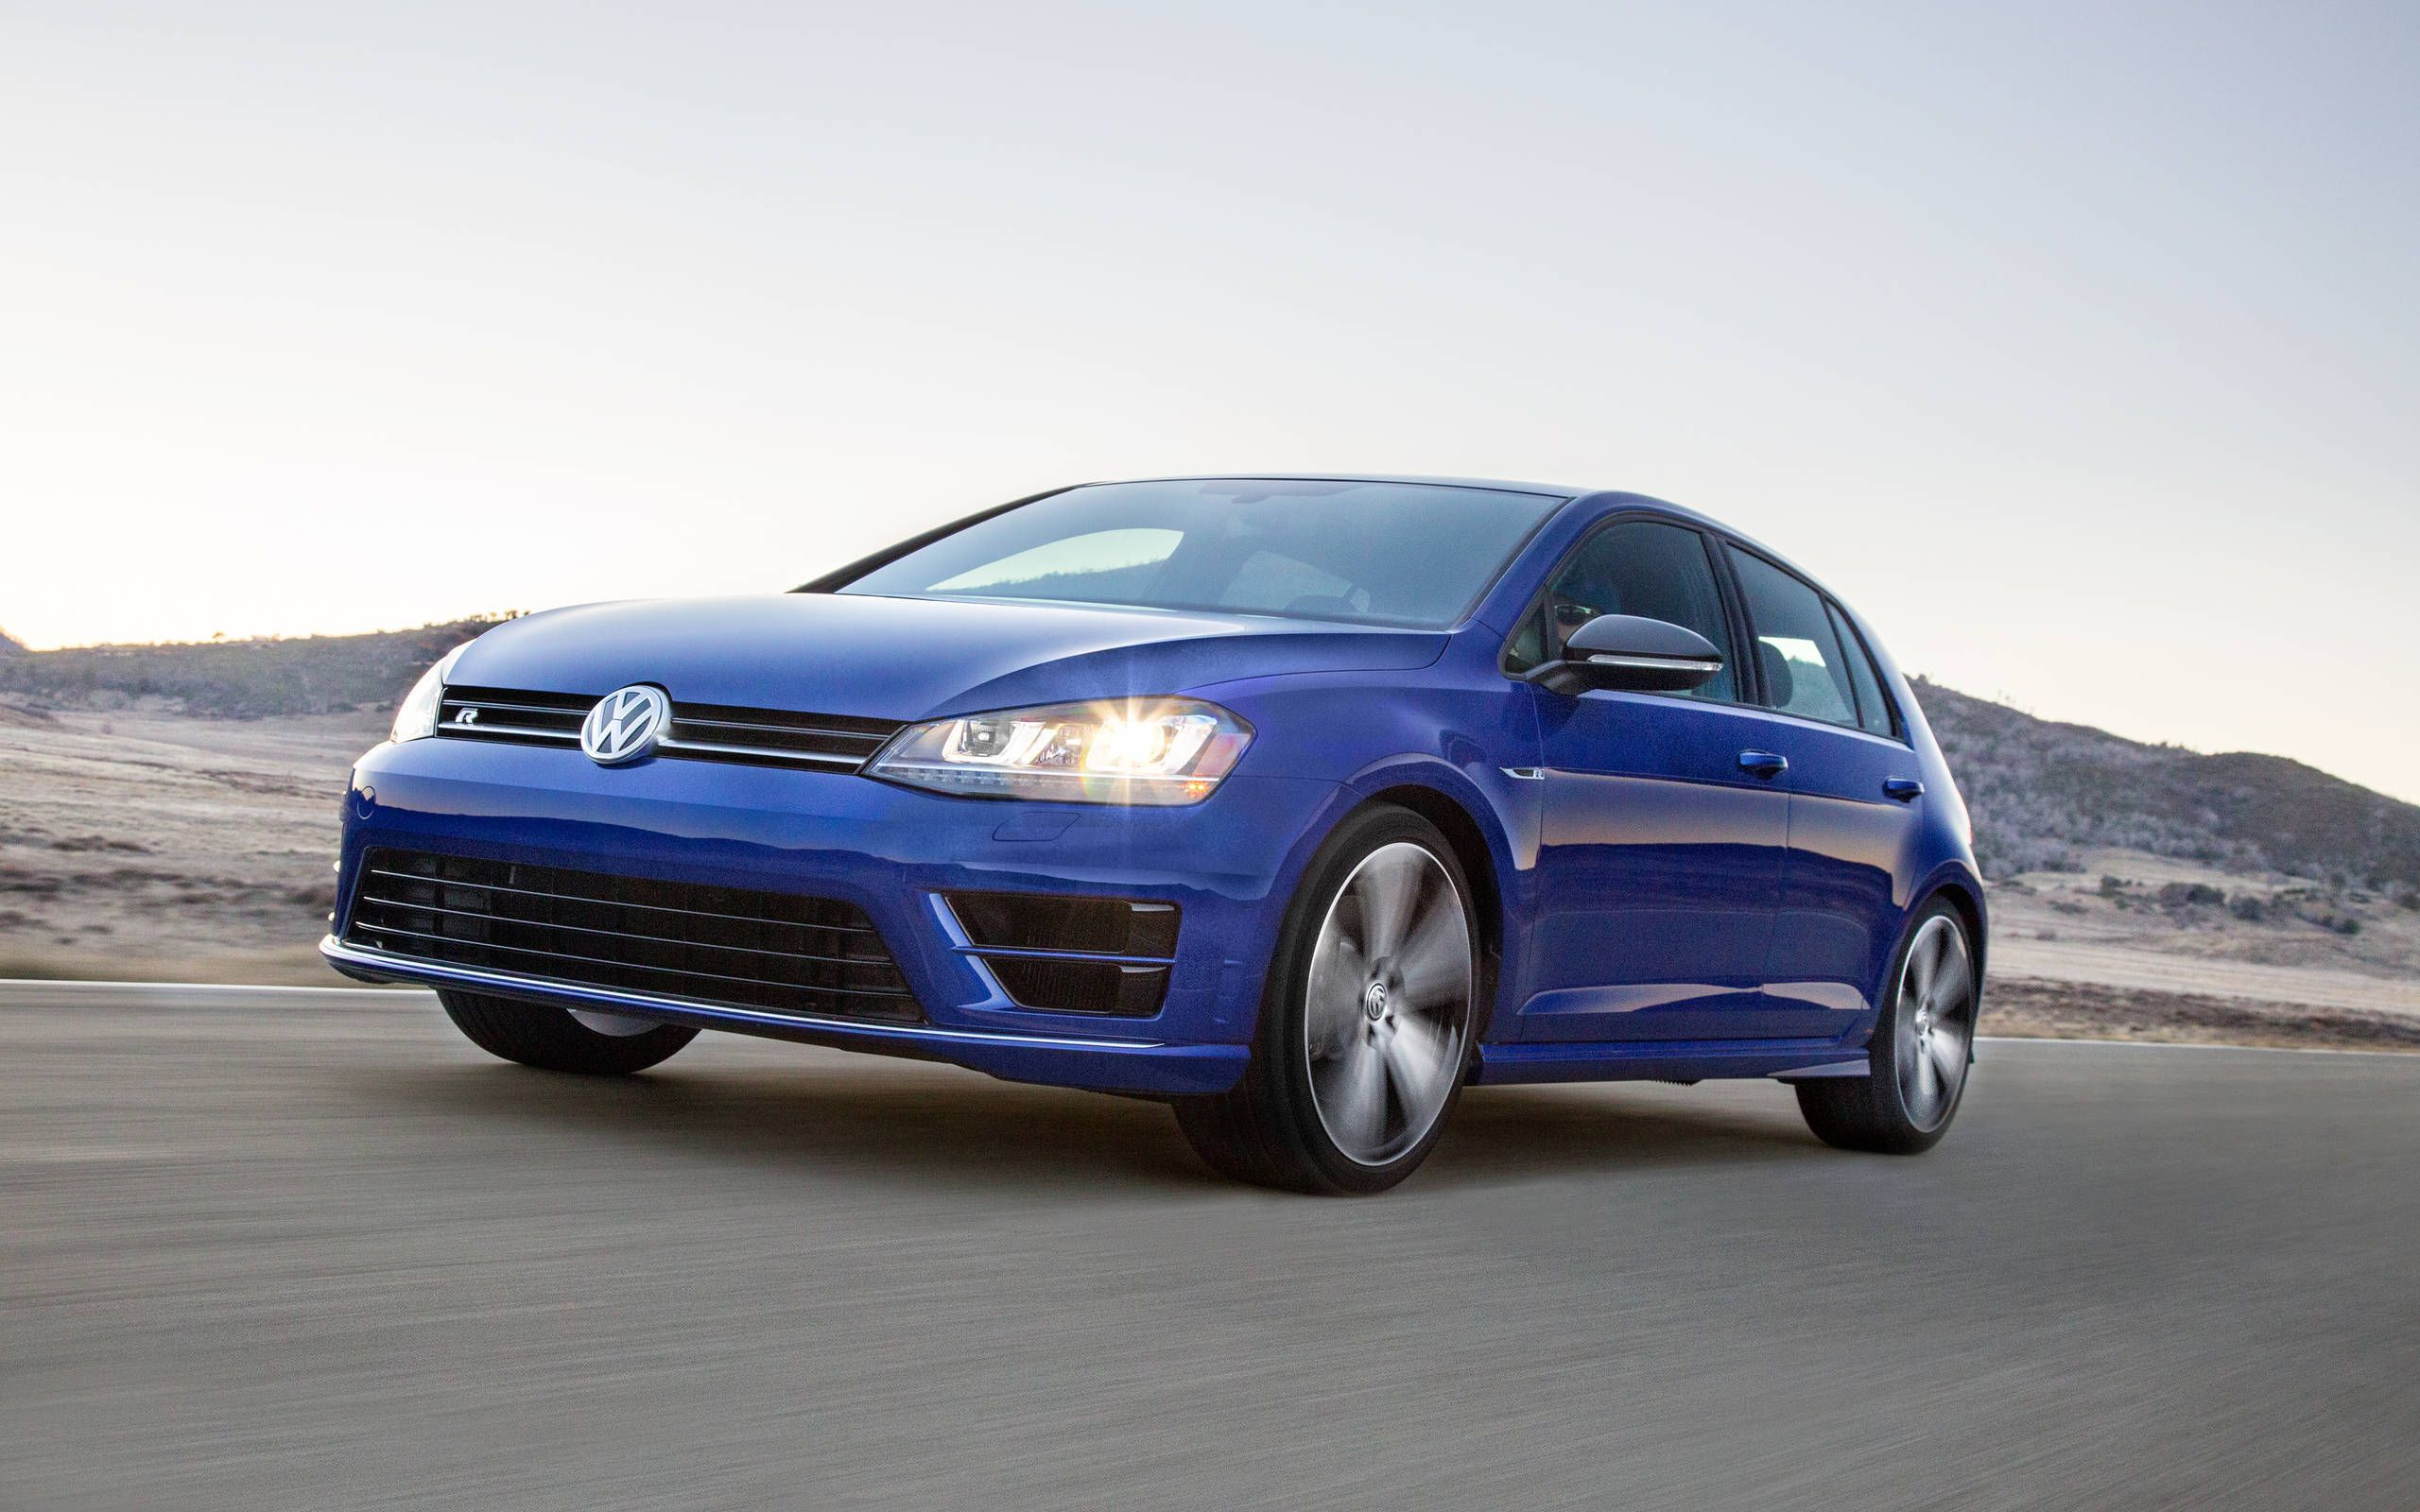 2016 volkswagen golf r review an audi s3 with more storage 2016 volkswagen golf r review an audi